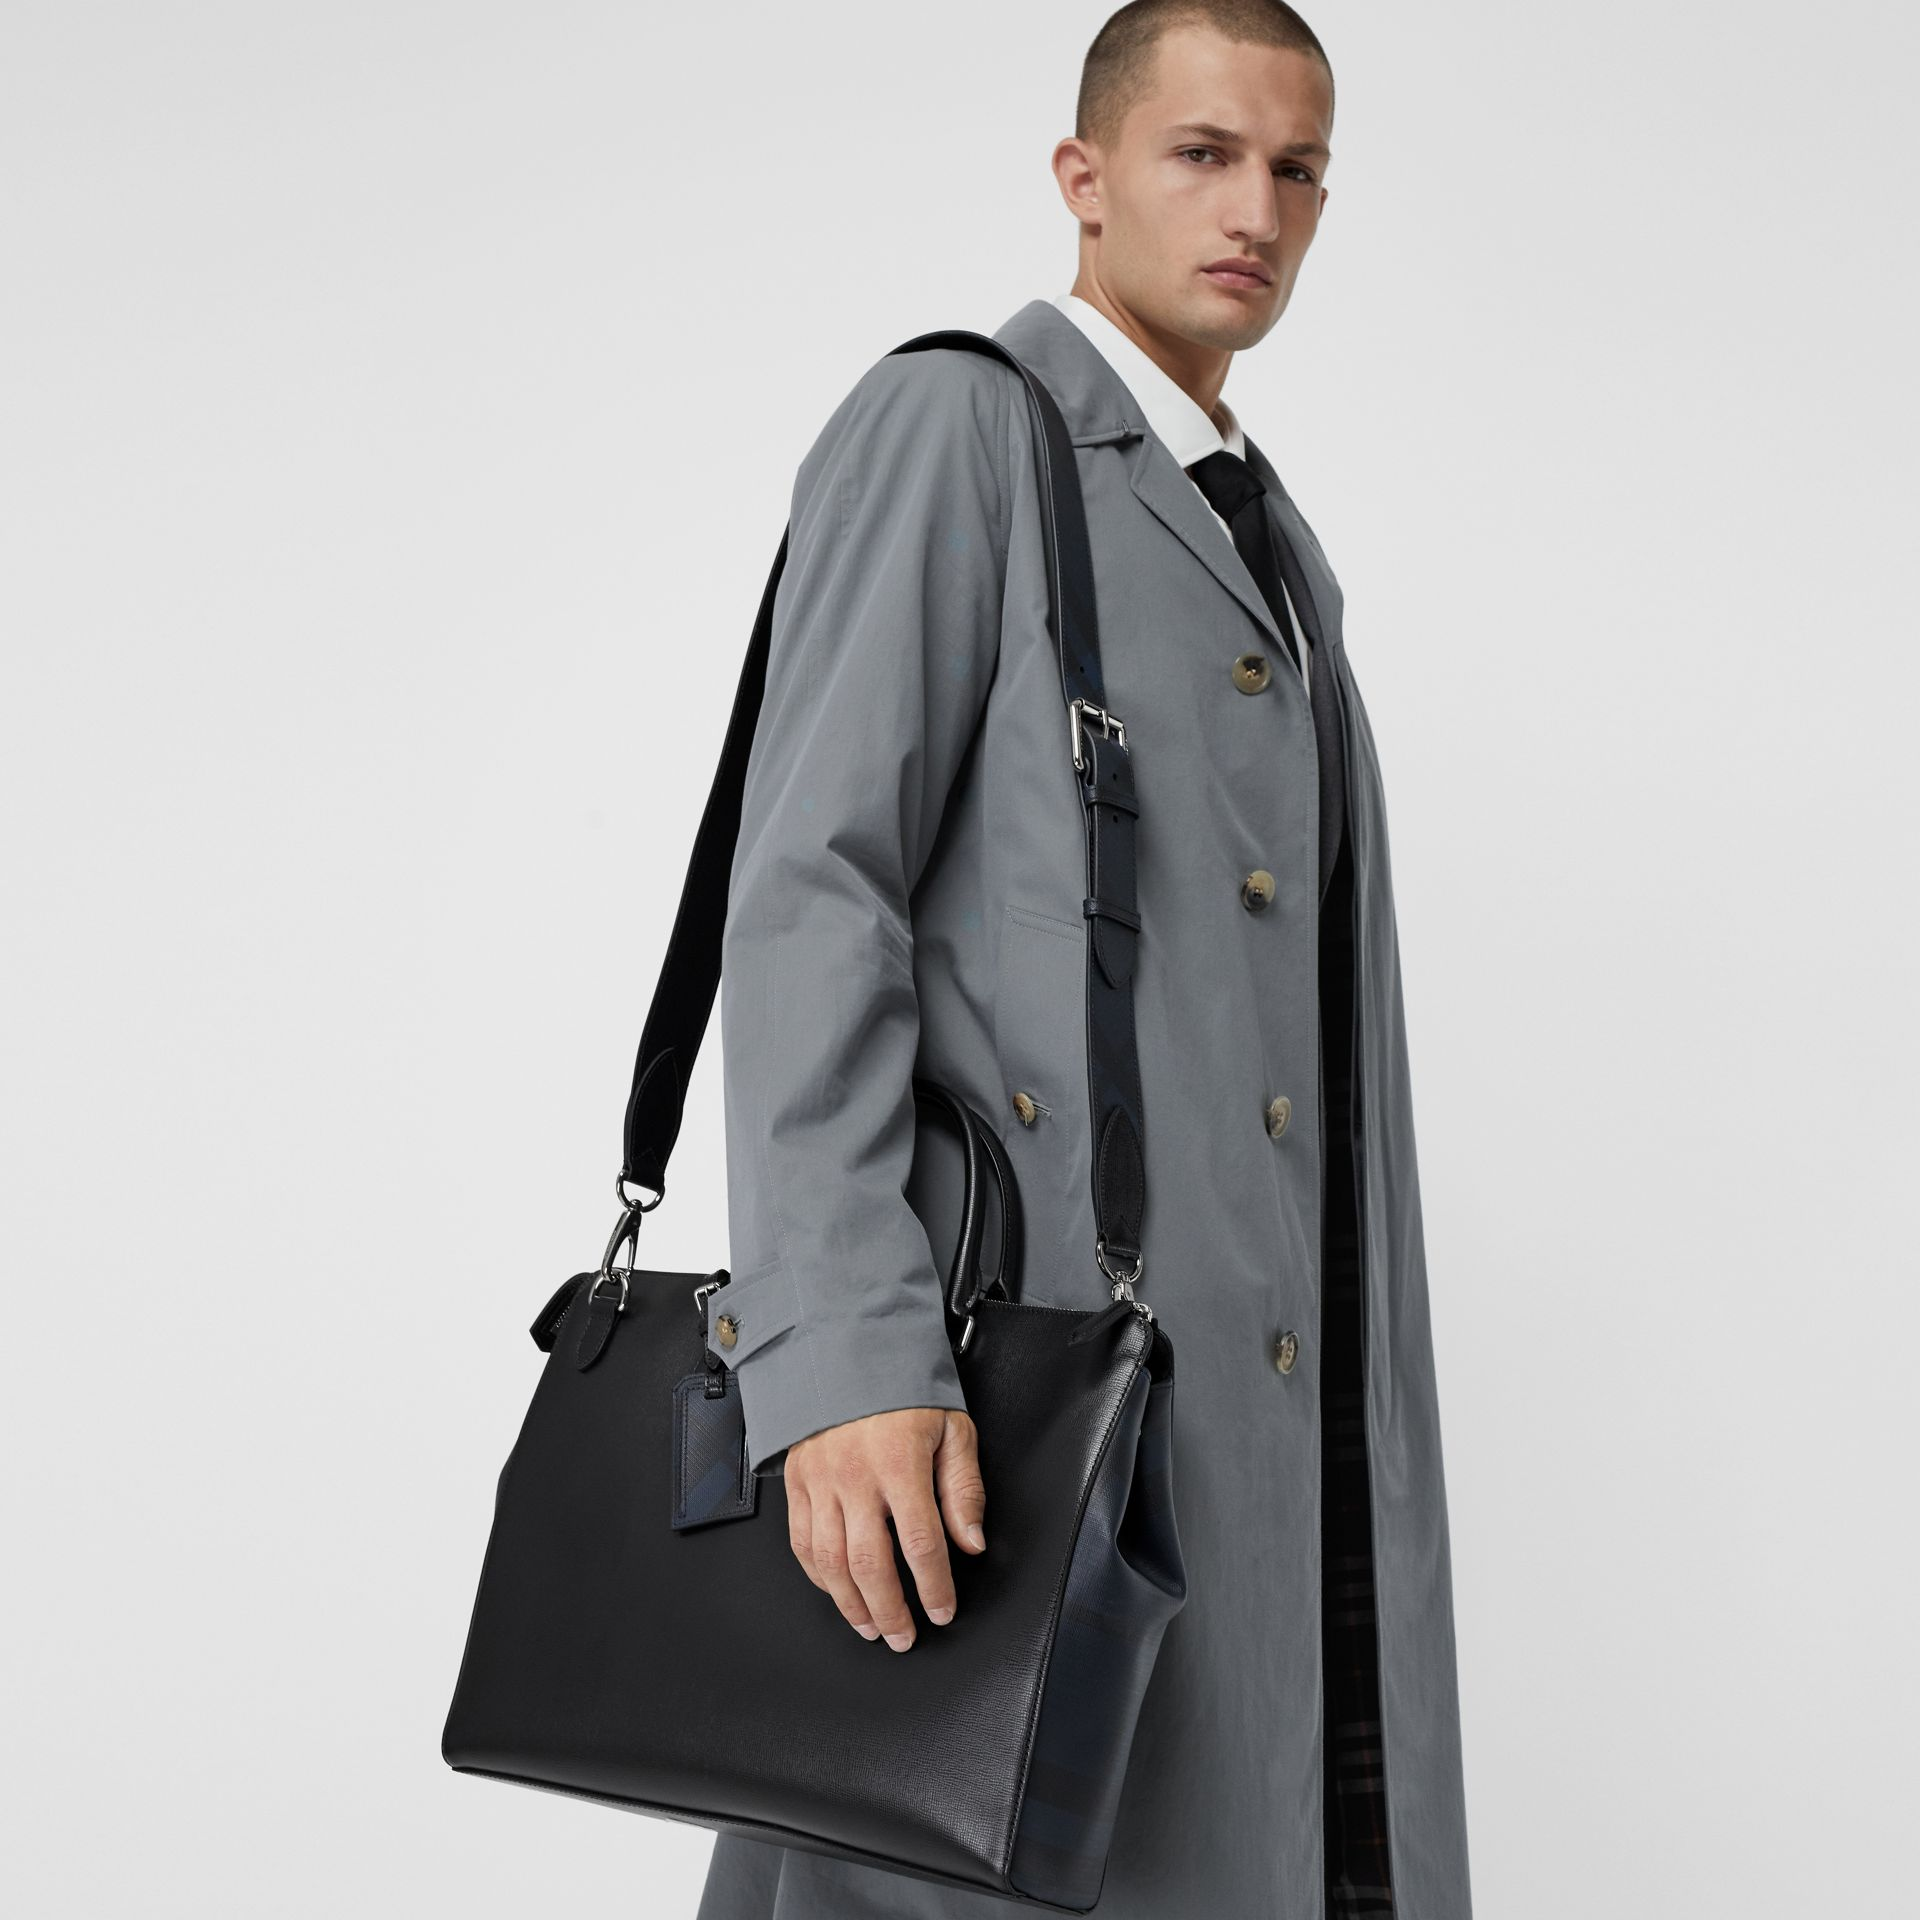 Large London Leather Briefcase in Black - Men | Burberry Australia - gallery image 3